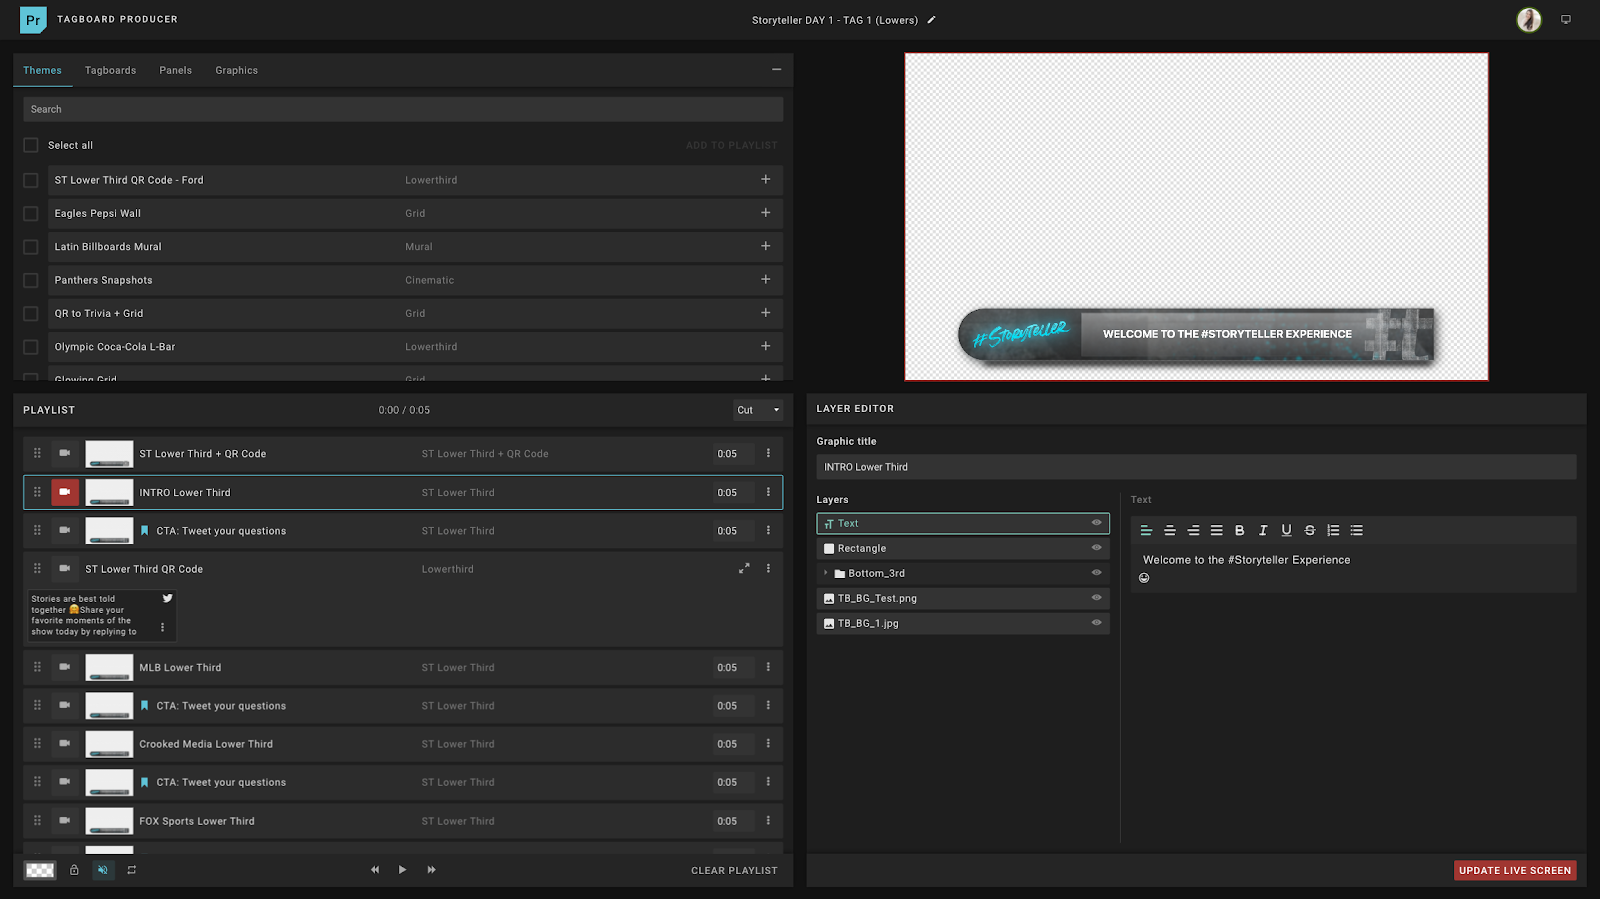 Tagboard Producer timeline and inline editor